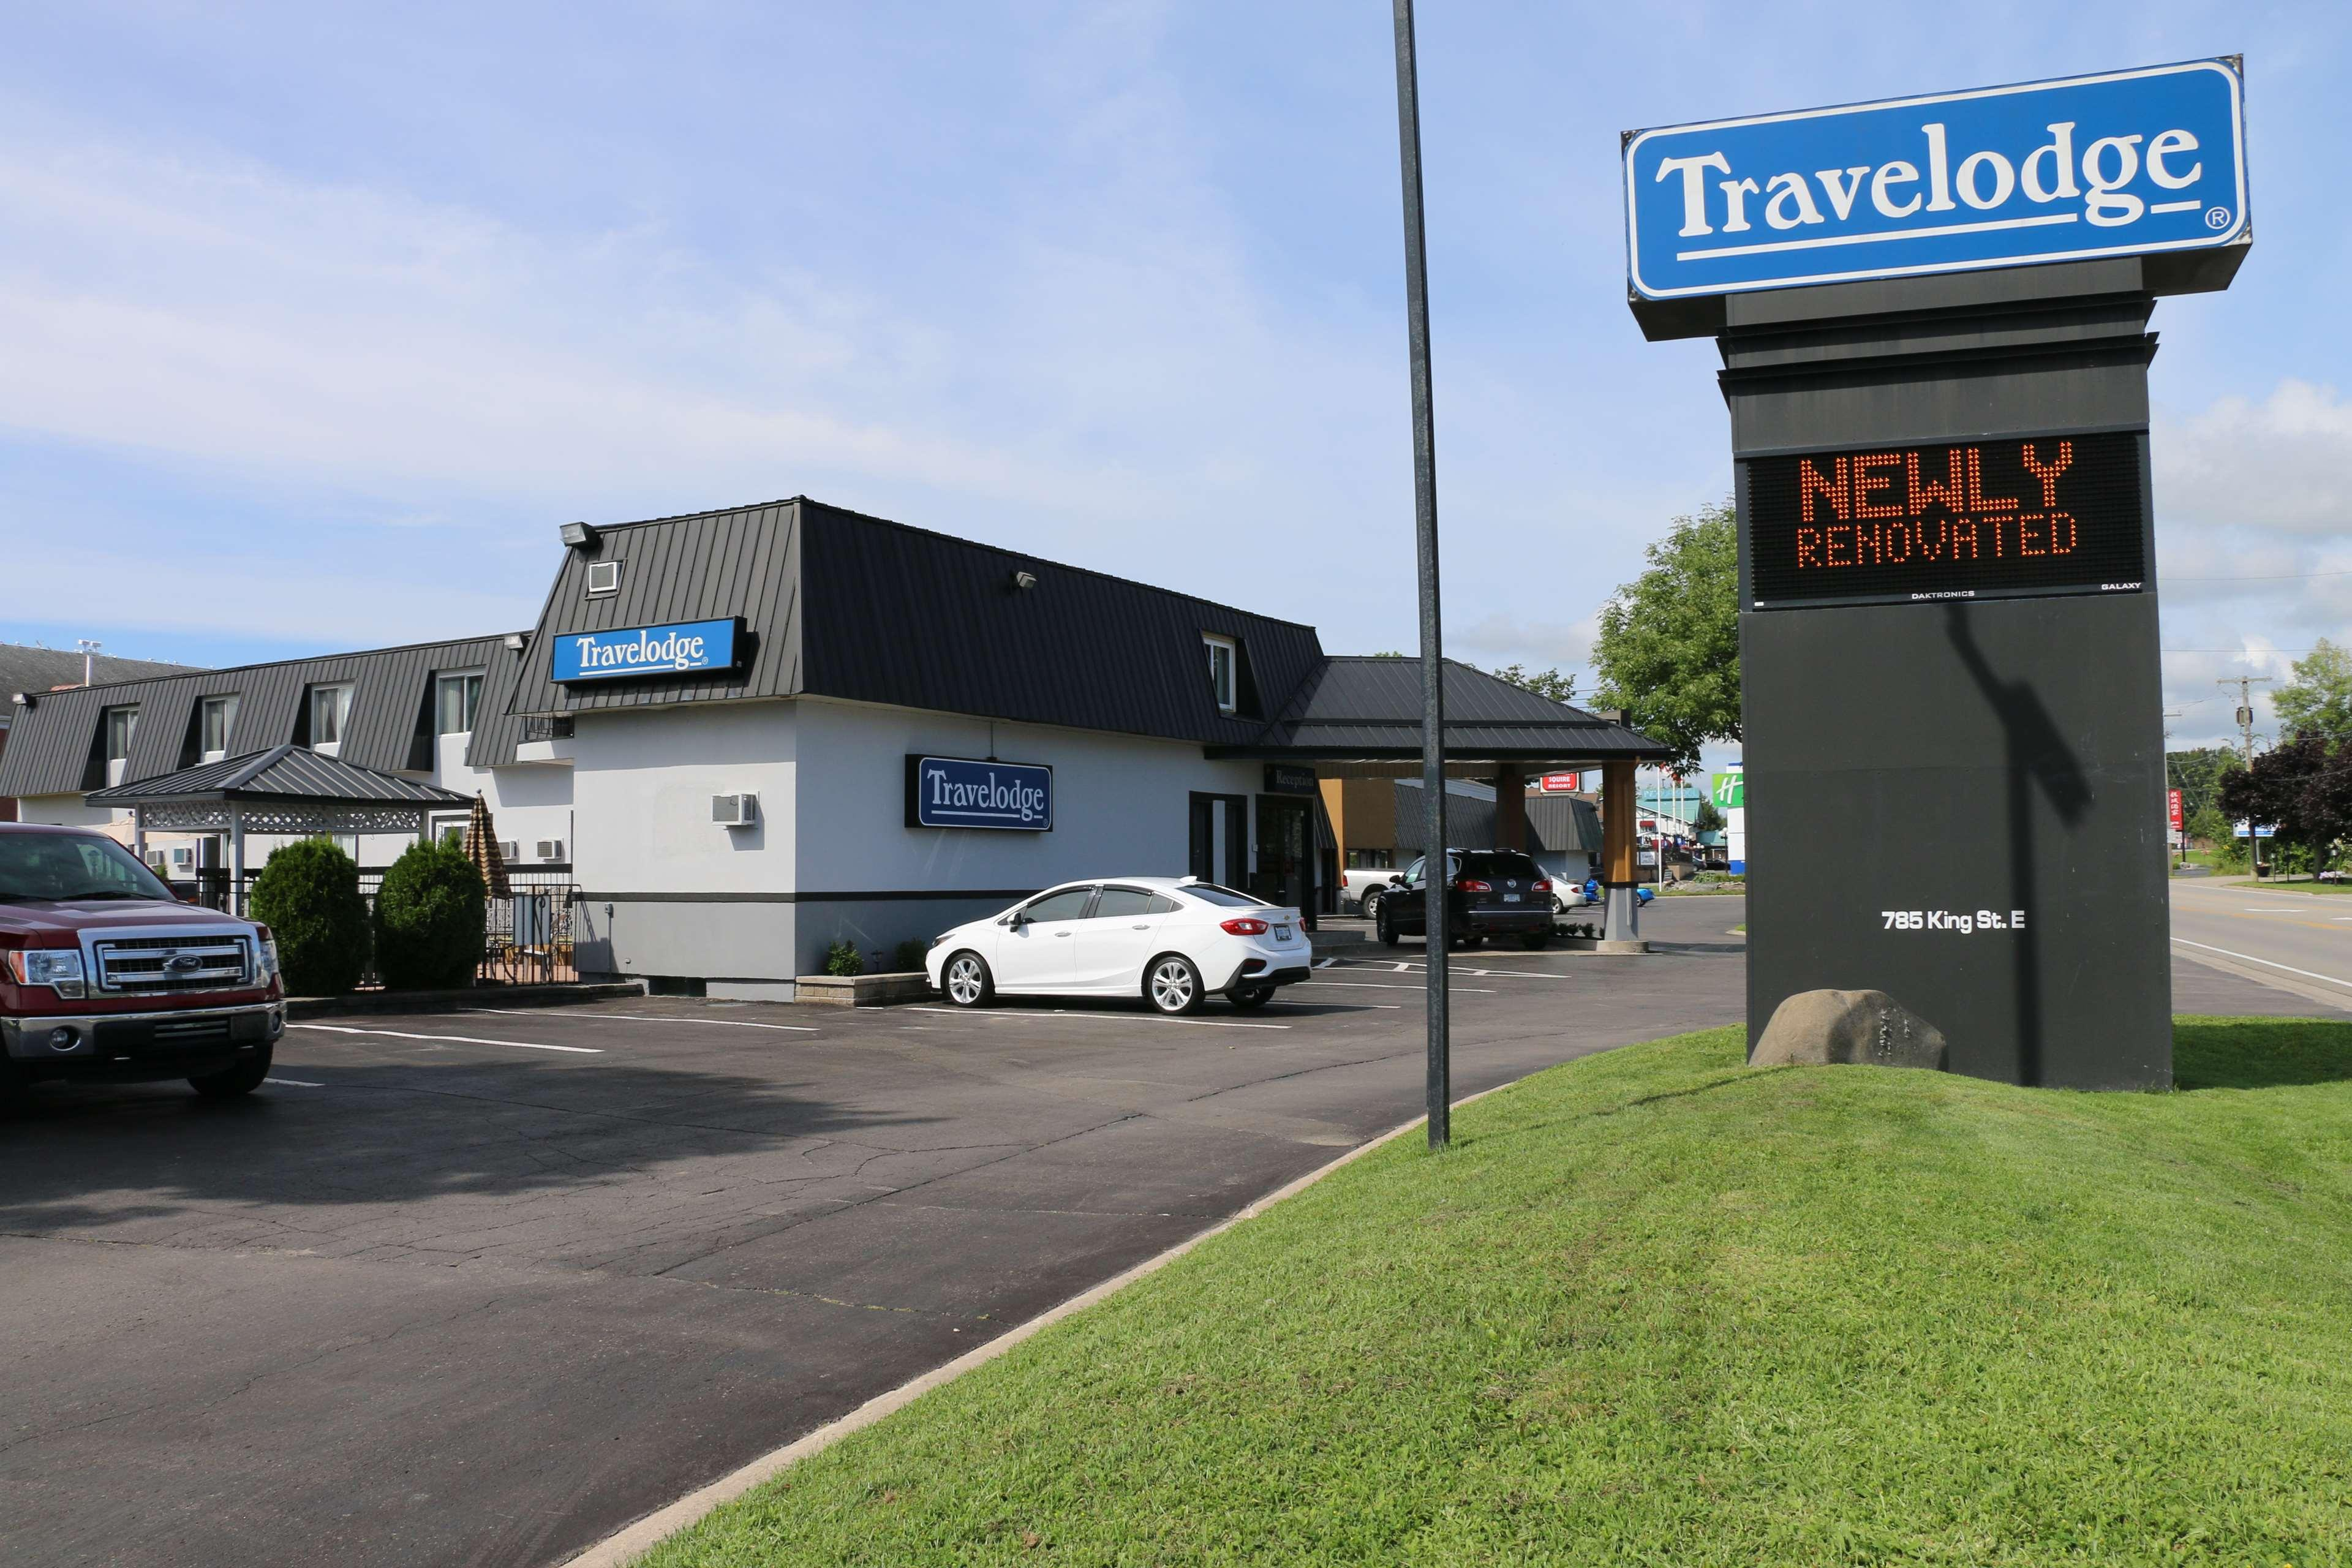 Travelodge Gananoque, Leeds and Grenville